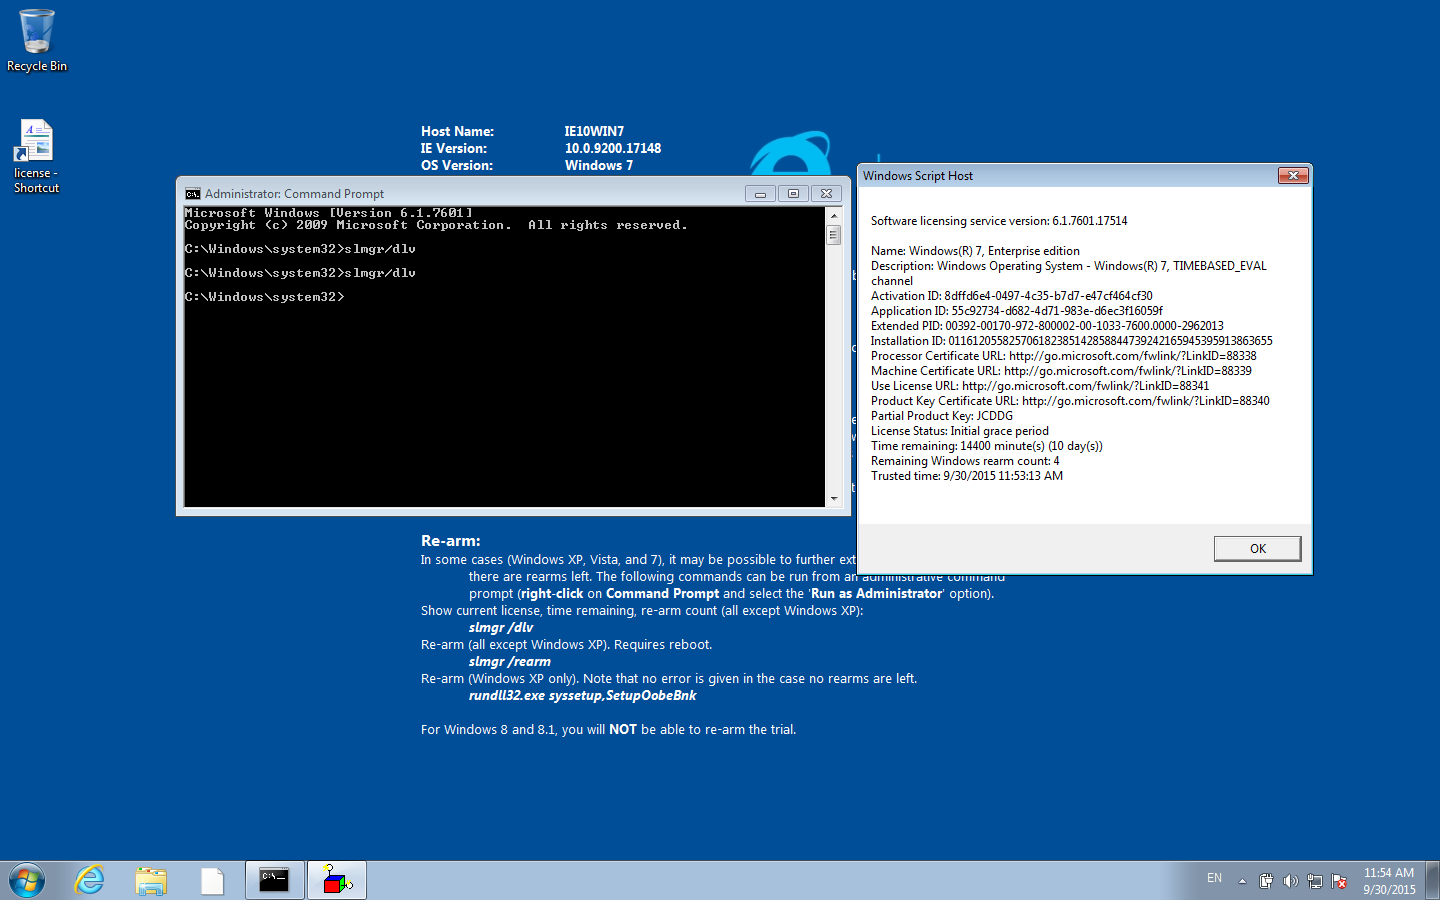 Windows command prompt nmap -  From The Windows Command Prompt Cmd Exe Which Must Be Run As Administrator I Expected To See That I Would Be Given 90 Additional Days Of Use